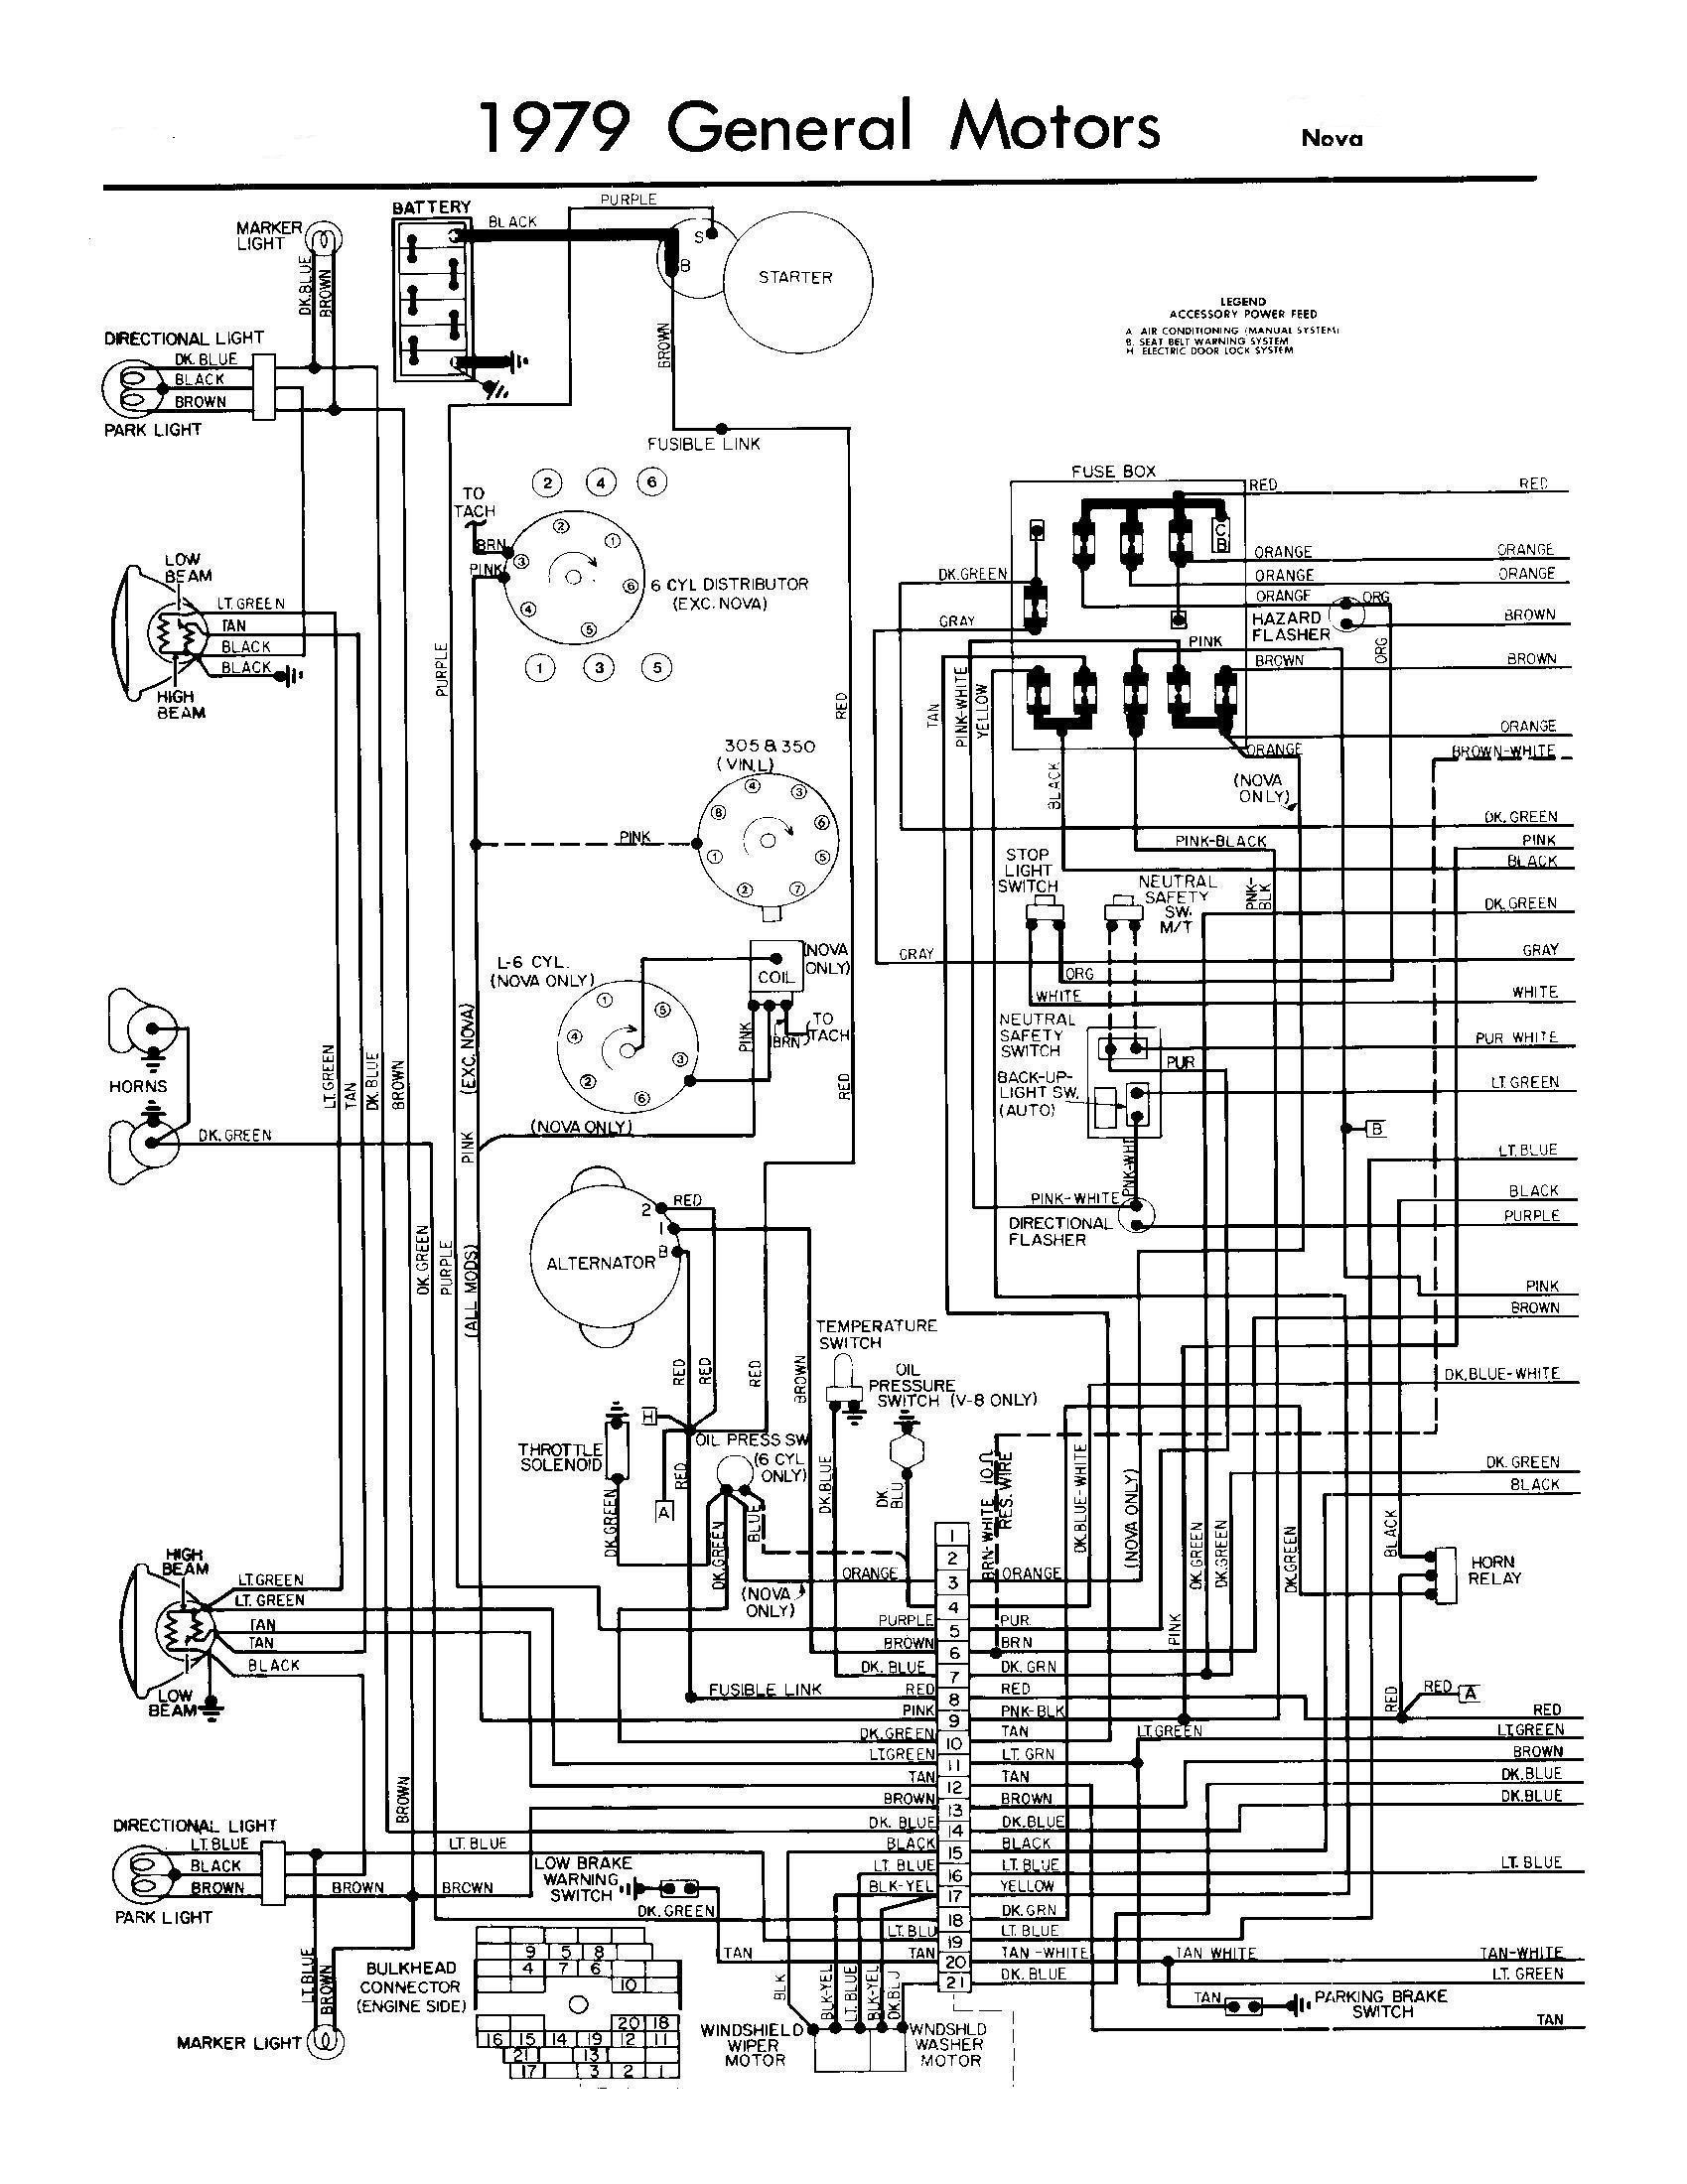 farmall c oil pump diagram best wiring library Chrysler 440 Oil Pump Diagram gm generator wiring schematic database wiring diagram gm alternator wiring diagram 4 wire gm generator wiring